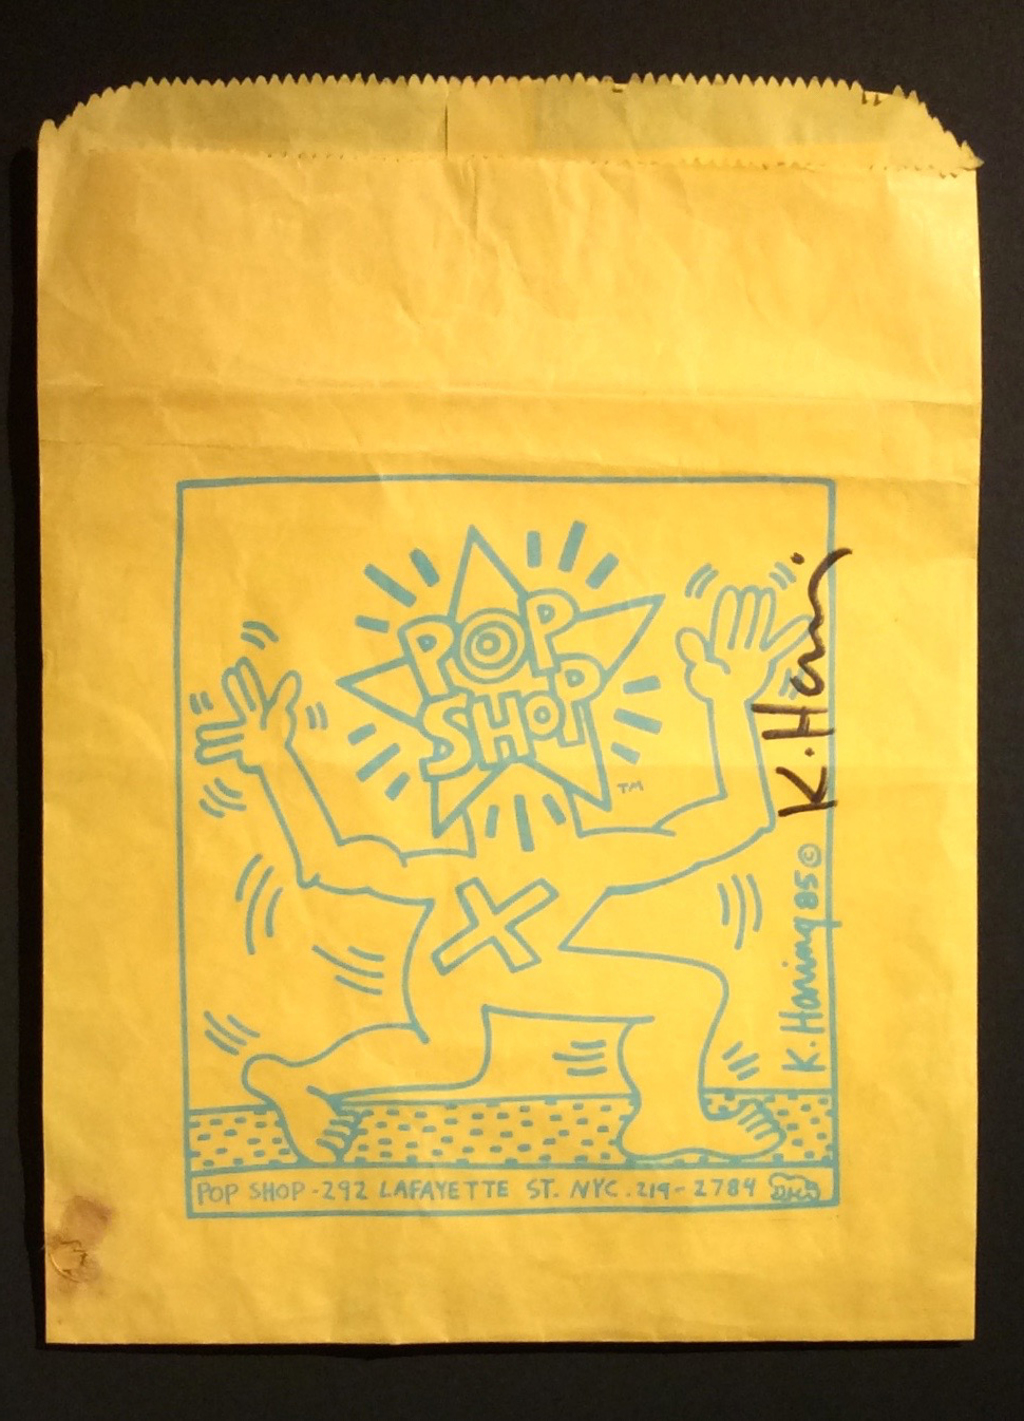 Pop Shop Bag by Keith Haring (1958 - 1990)